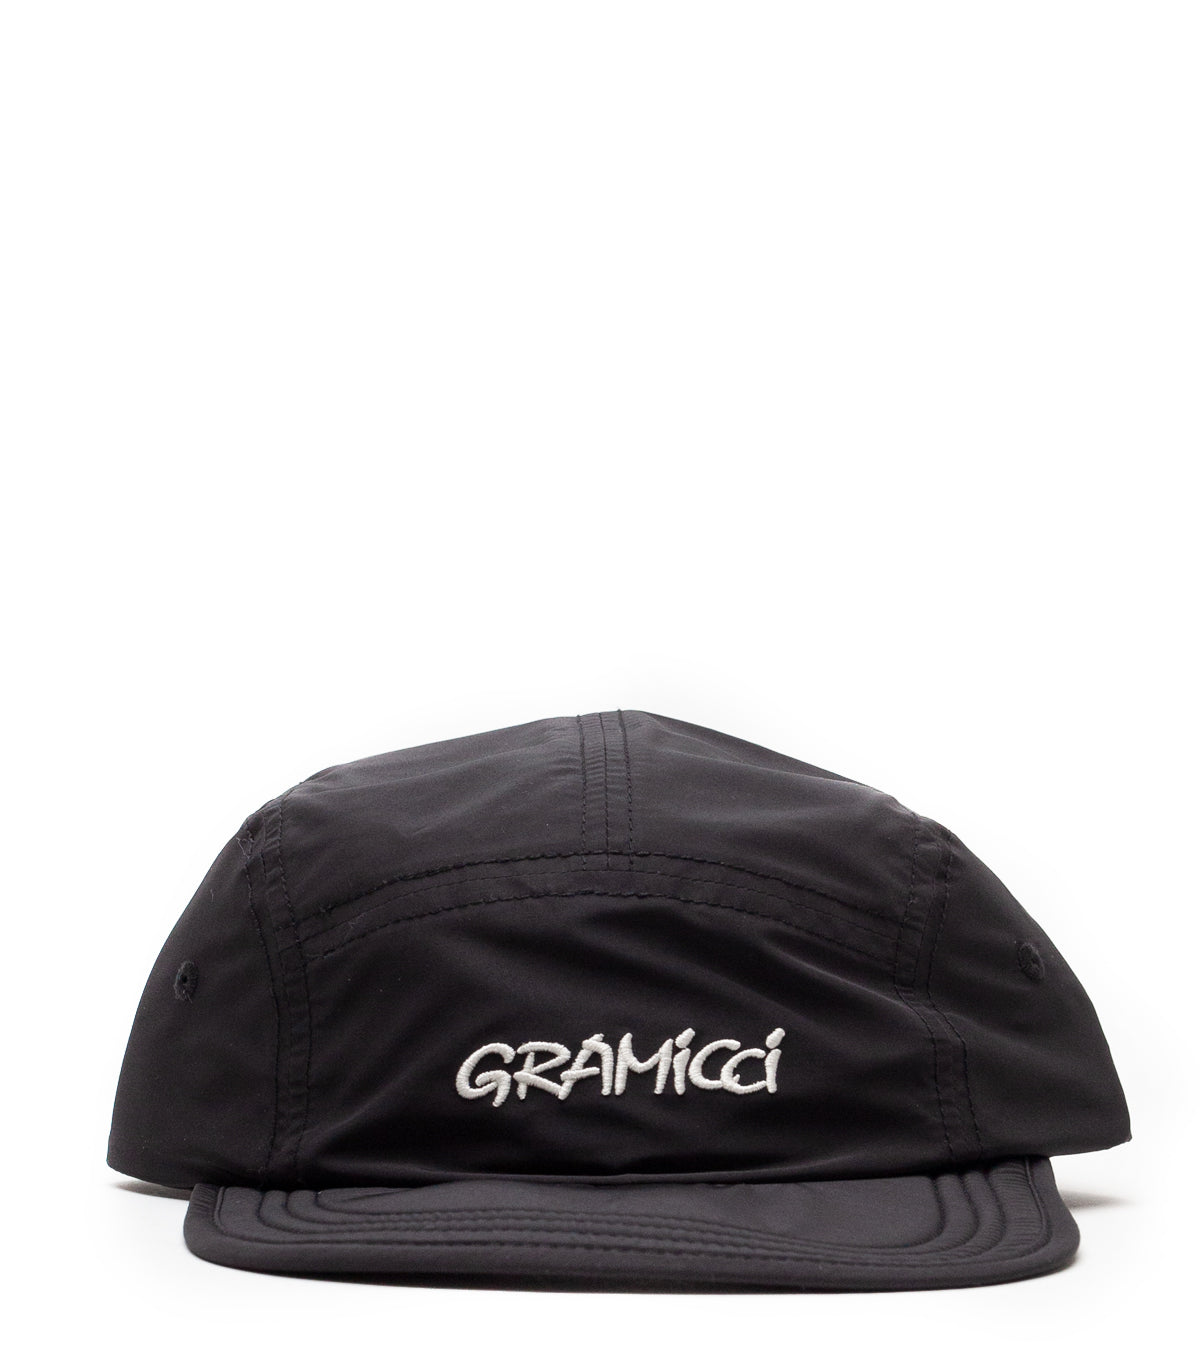 New Era Nationals 9Fifty Snapback Black by SOMEWHERE®